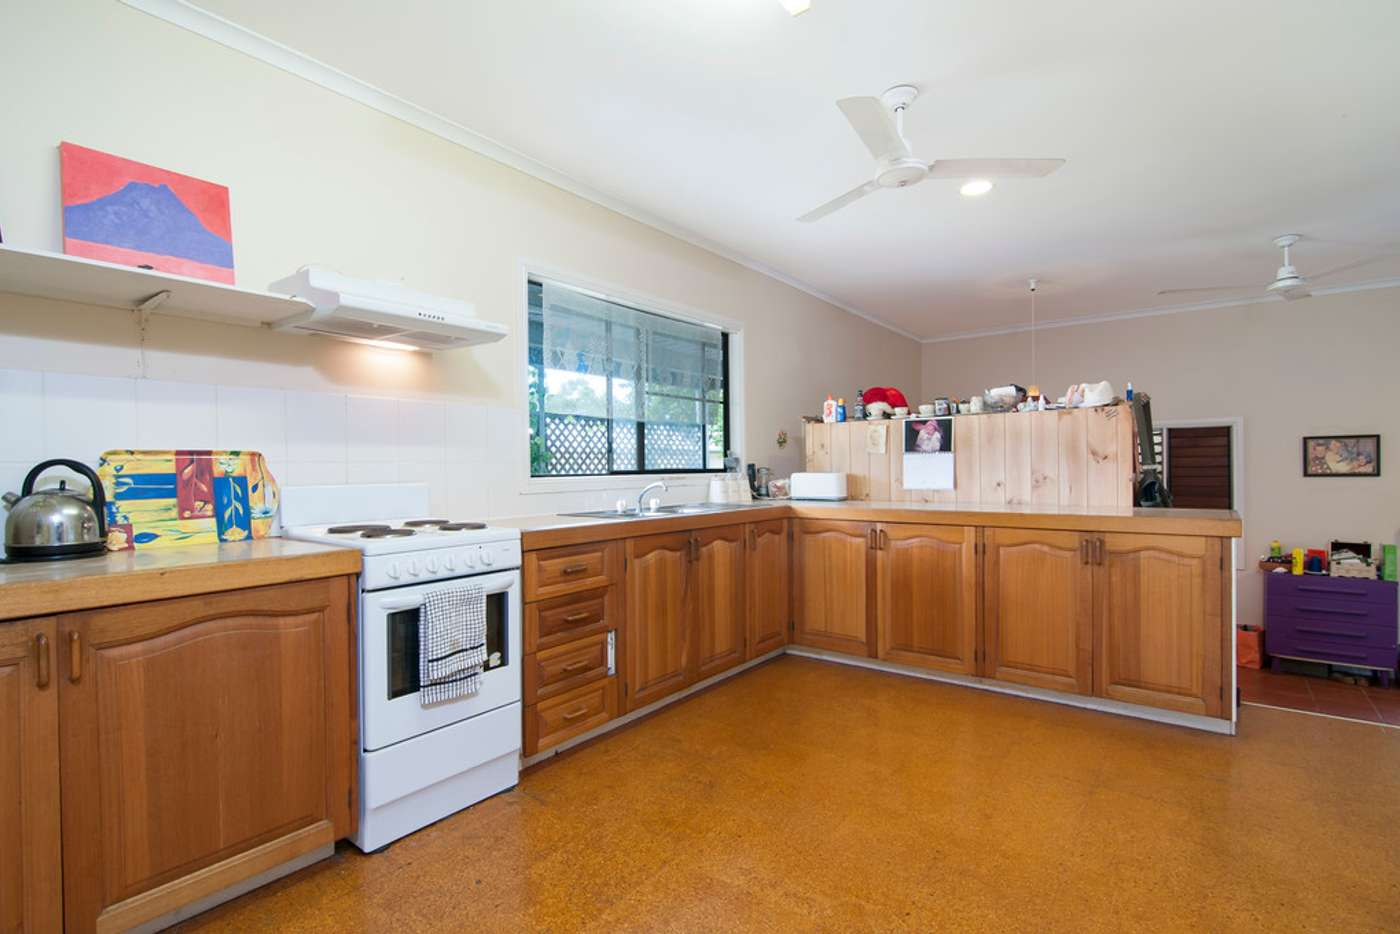 Main view of Homely house listing, 16 Barra Close, Wonga Beach QLD 4873